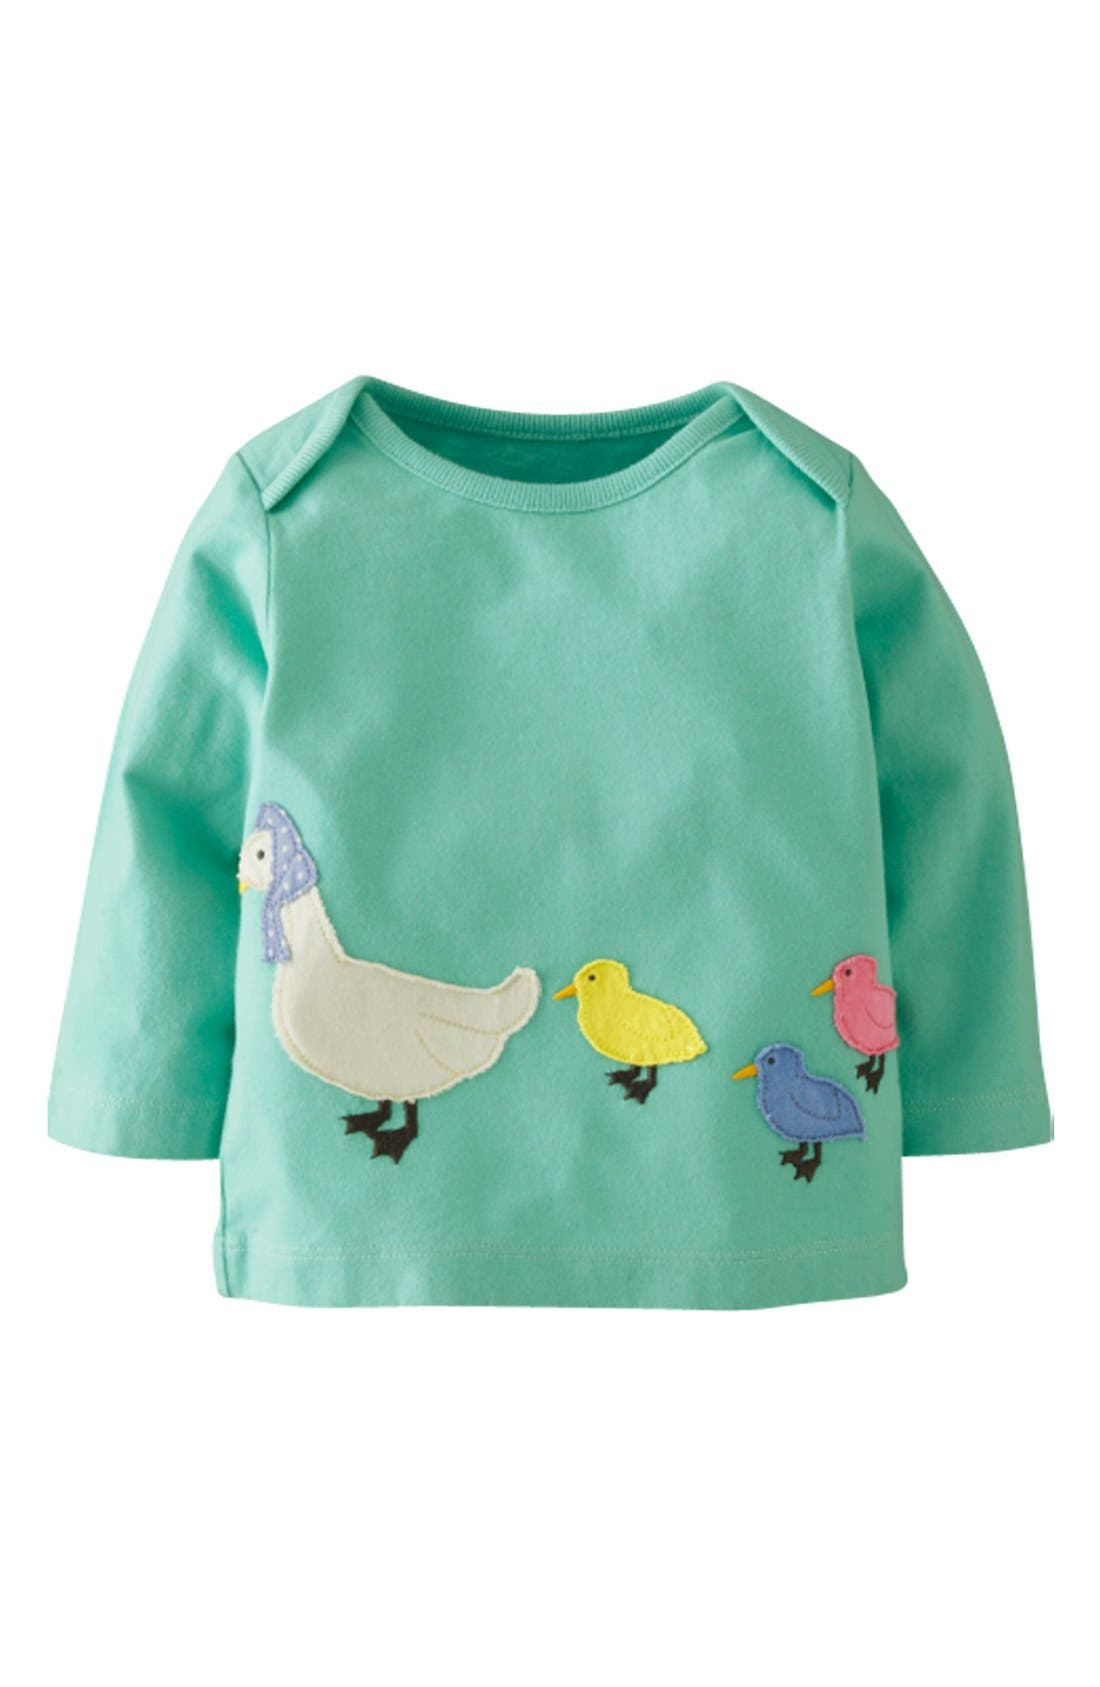 Alternate Image 1 Selected - Mini Boden Patchwork Appliqué Tee (Baby Girls)